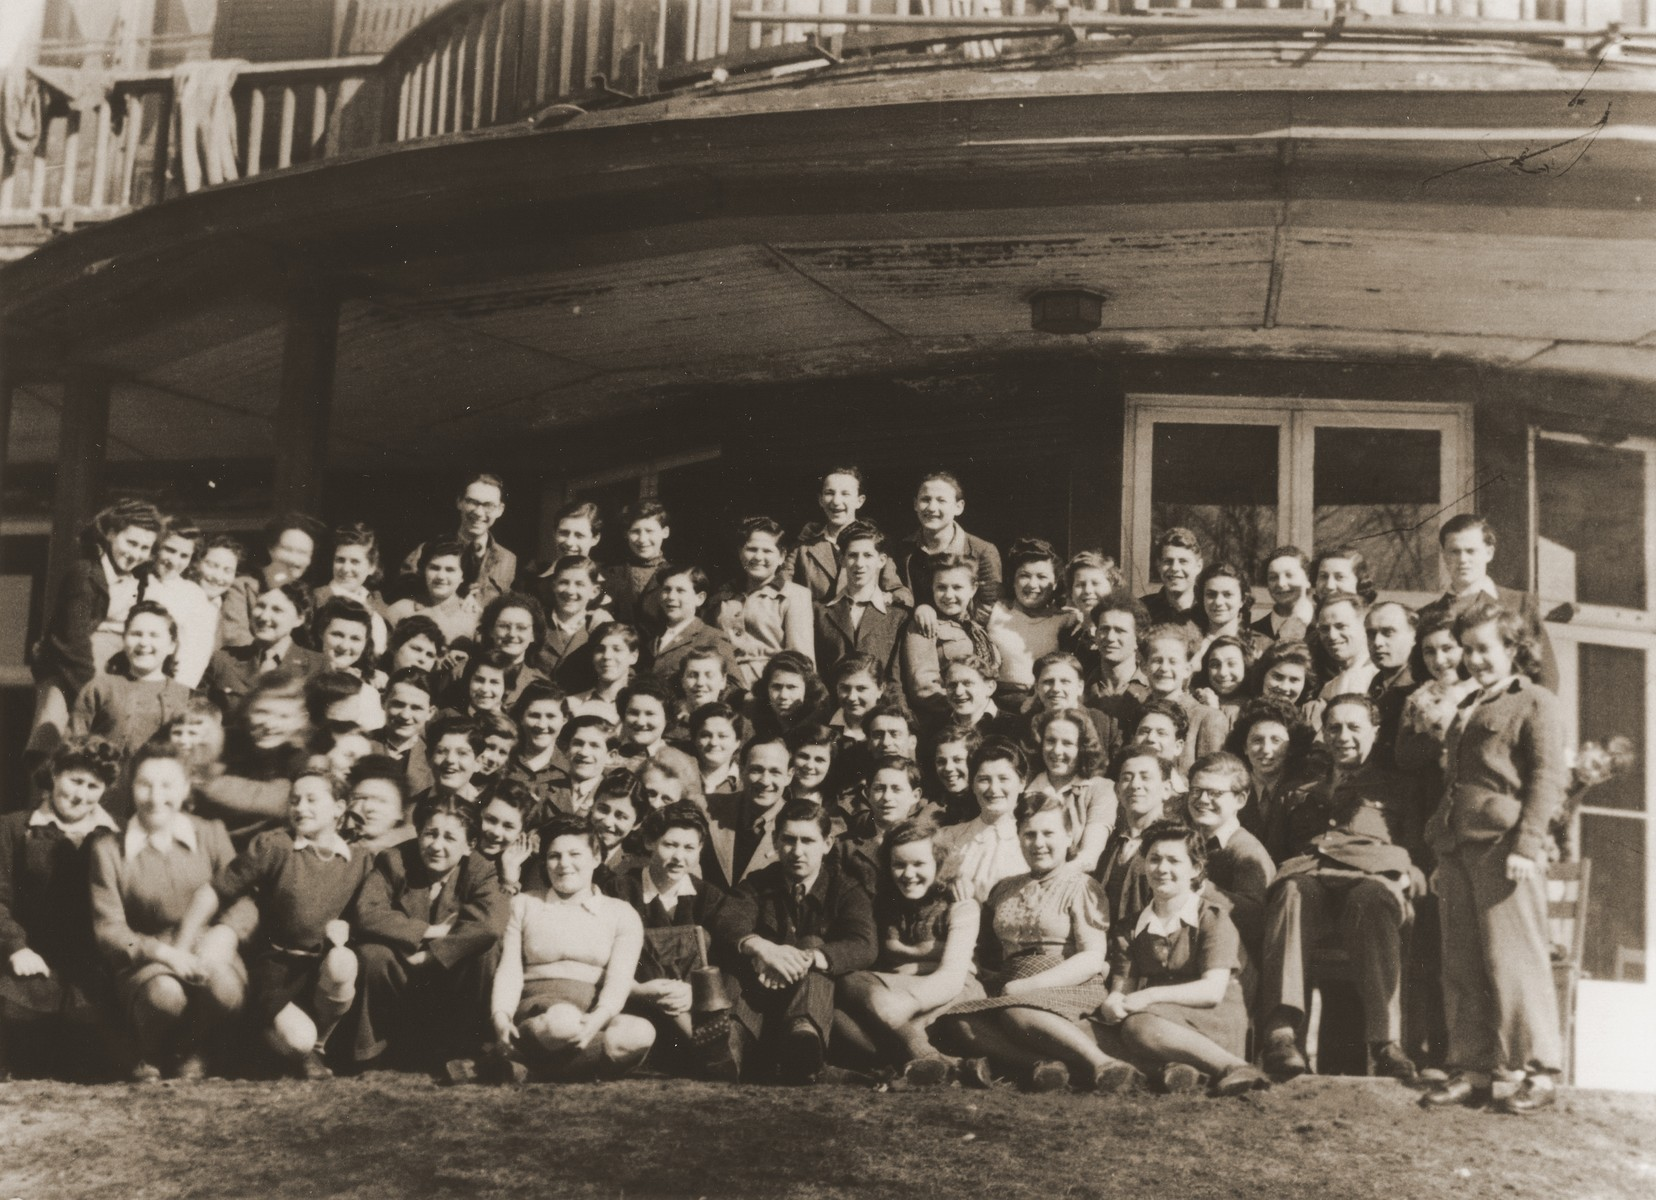 Group portrait of DP children from the Bergen-Belsen displaced persons camp at the Warburg children's home in Hamburg-Blankenese.  Among those pictured are Penina Zidnir, David Gur-Aryeh, Tzvi Zohar, Dushya Shifron, Arieh Swartz, Yochevet Adler, Mordechai Shmanovitz, Shifra Ziskand, Inge Grundel and Herbert Grunde.  Pictured in the front row, second from the left, is Halina Danziger.  Pictured in the third row, seated far left, is Egon Fink, who worked for the AJDC.